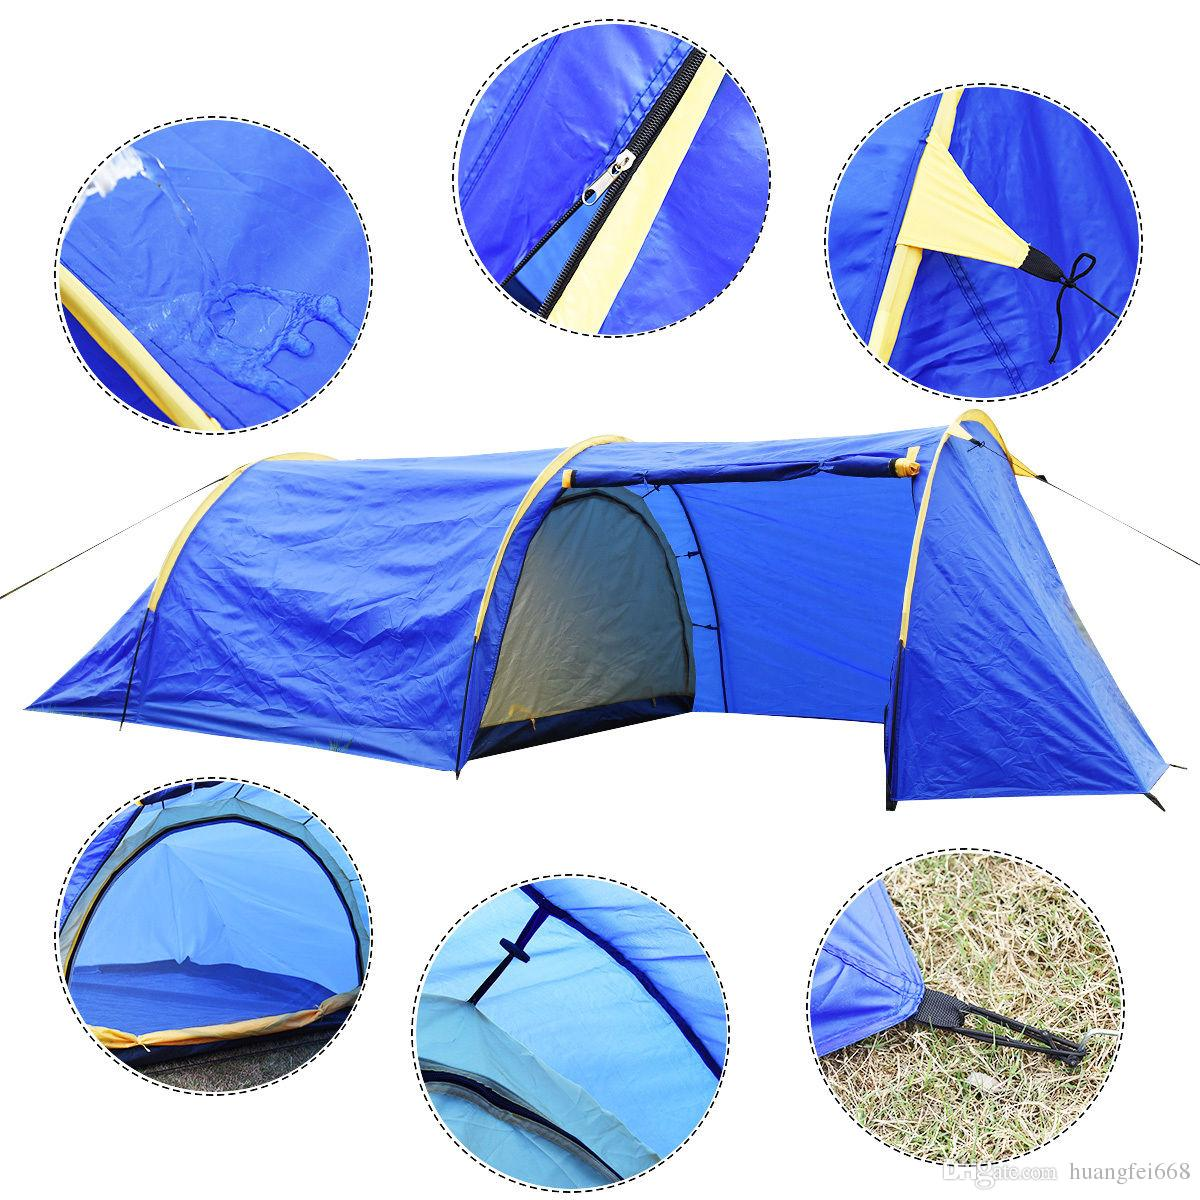 Tent clipart waterproof Layer 3 Tent Tunnel Hiking